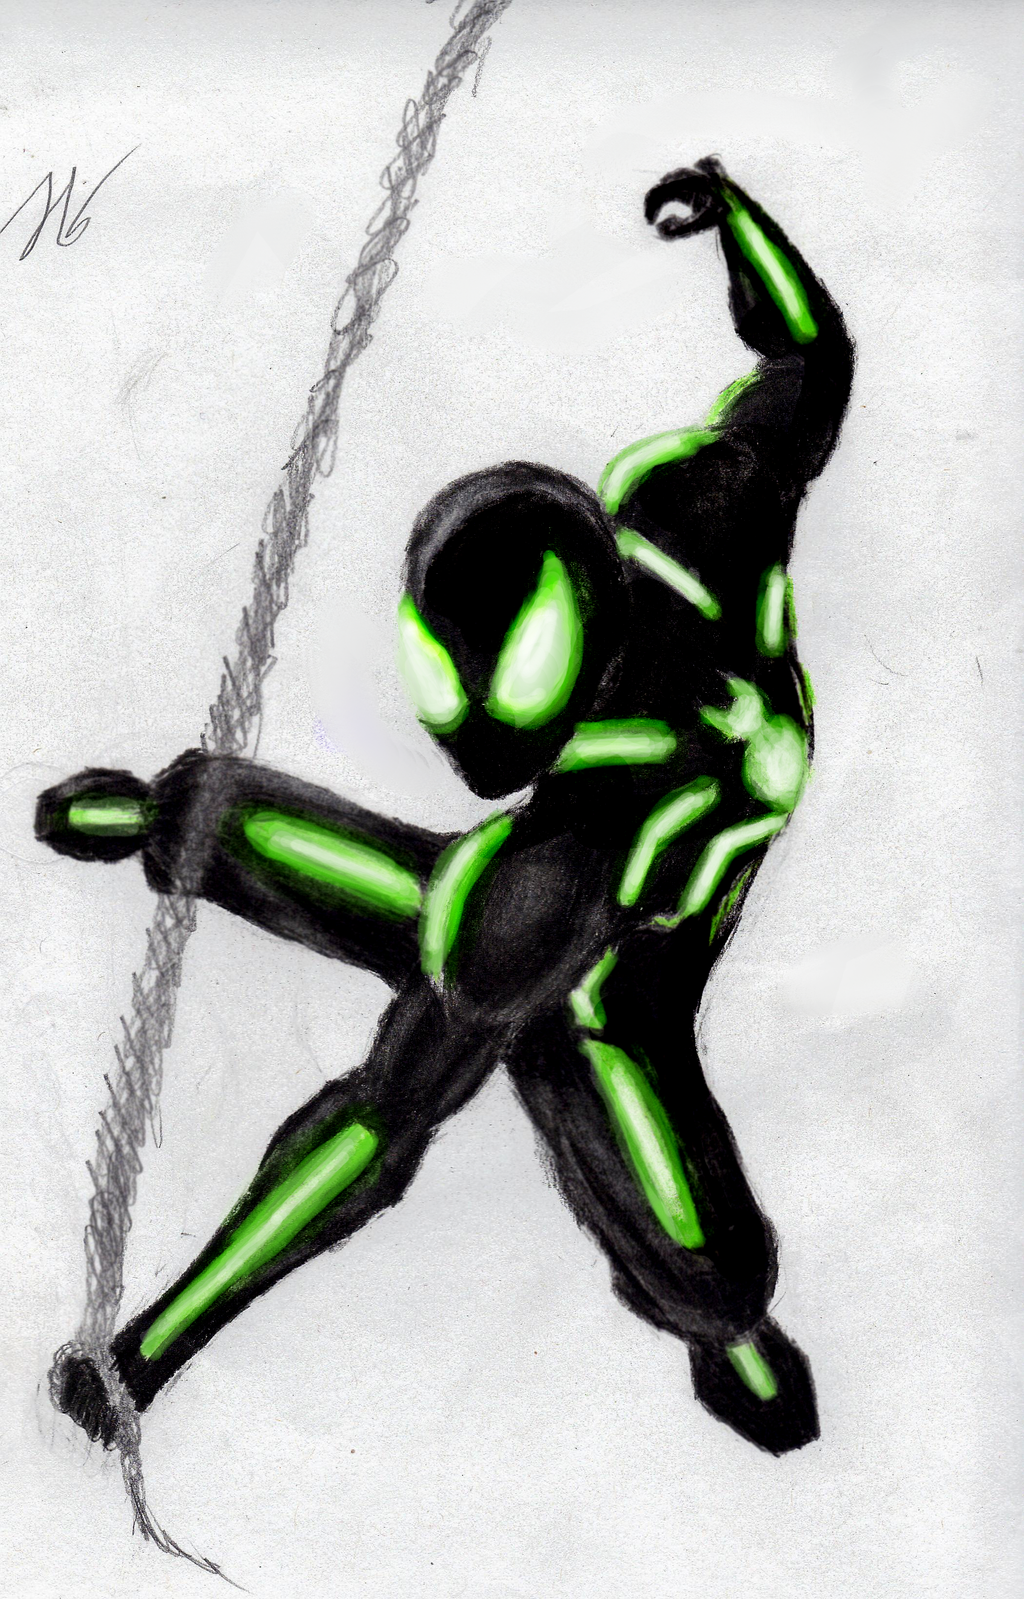 Big Time Spider-Man (Stealth Mode) by ULTRA235 on DeviantArt